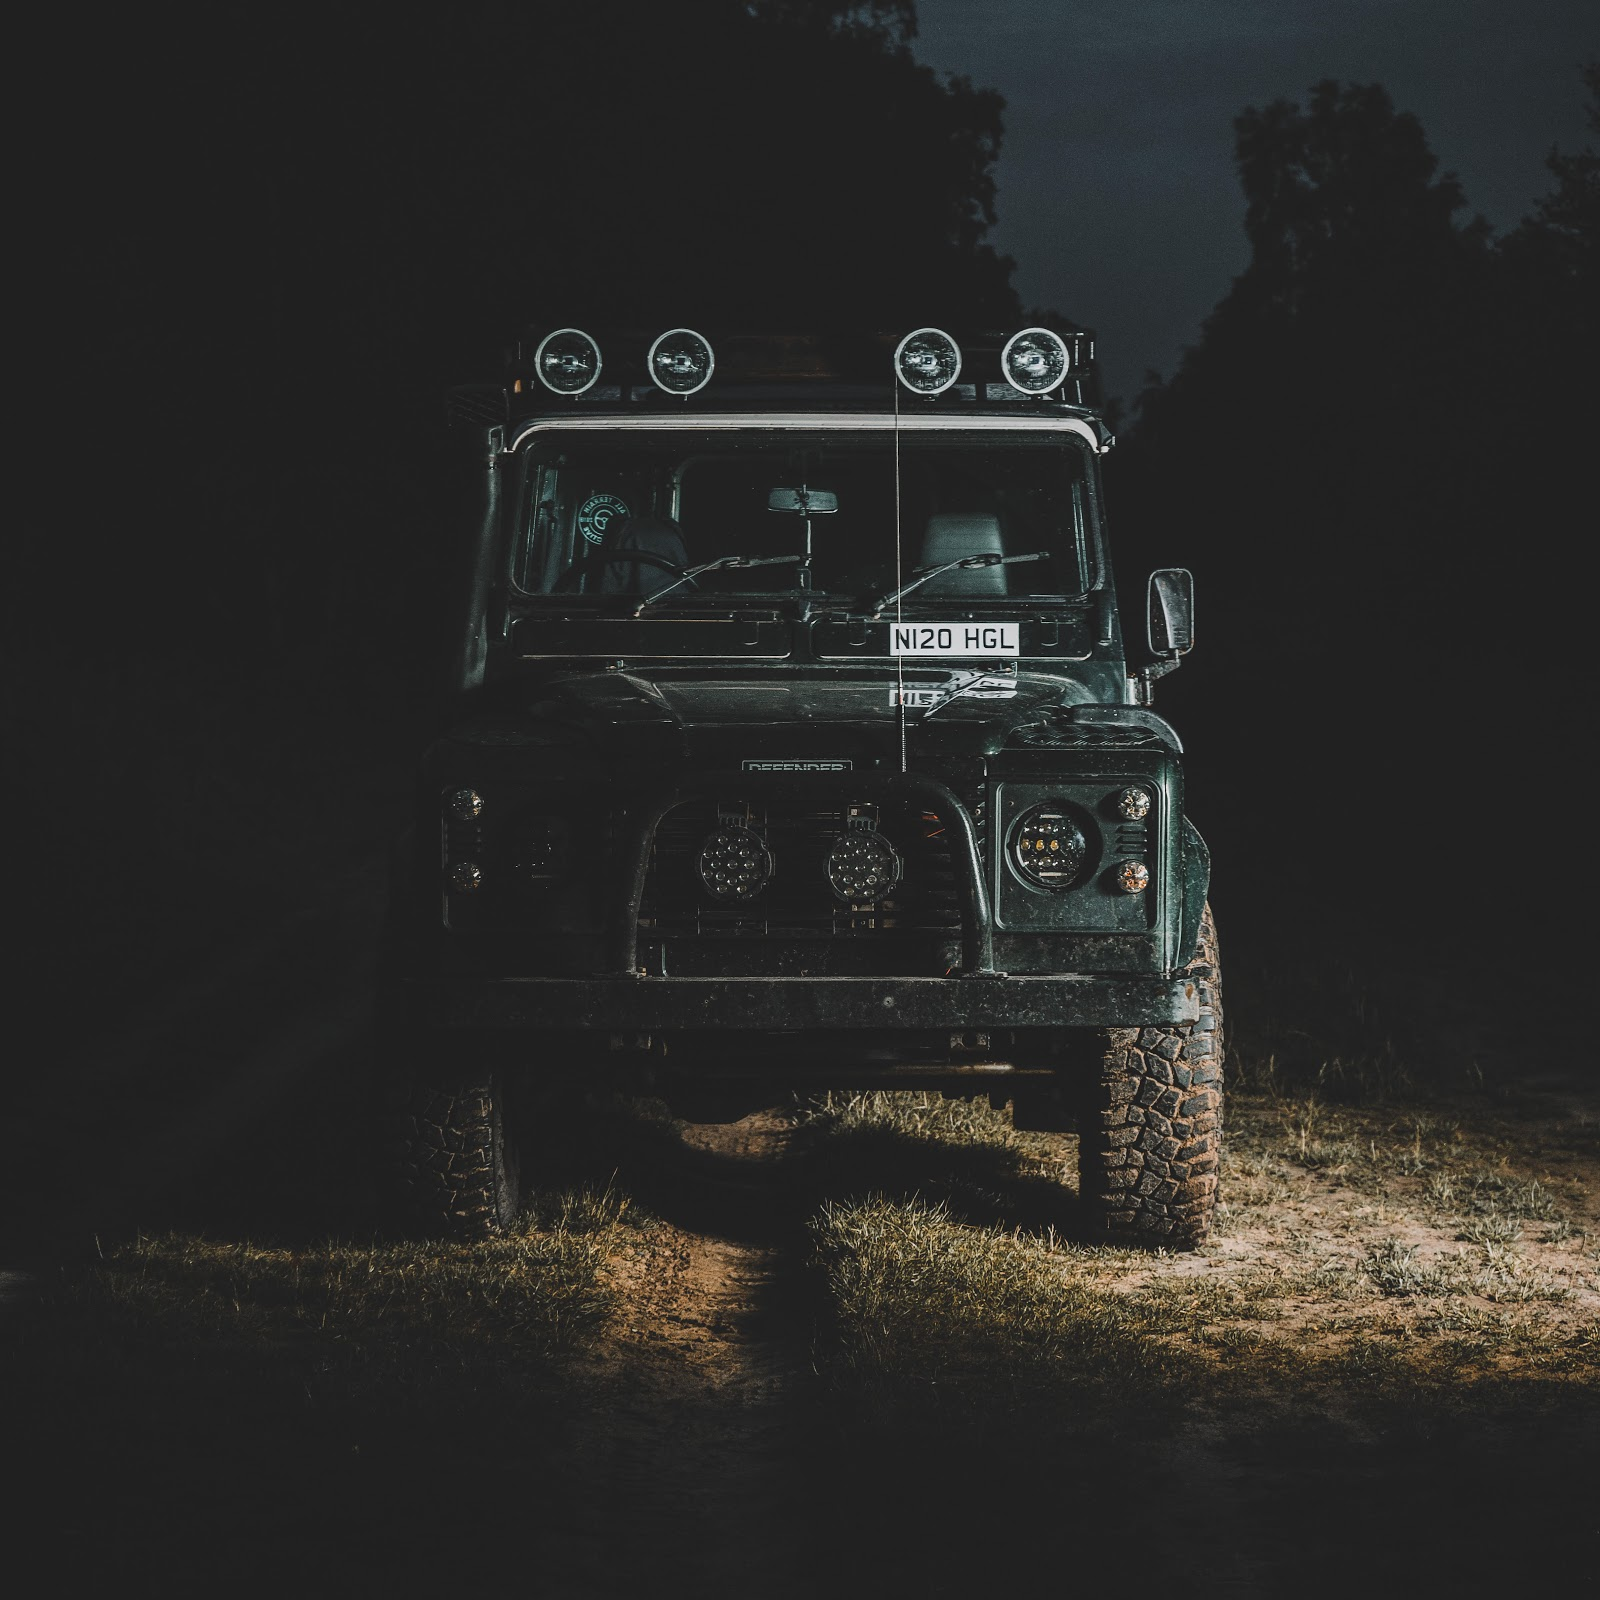 The Land Rover presents some light in the darkest of times.